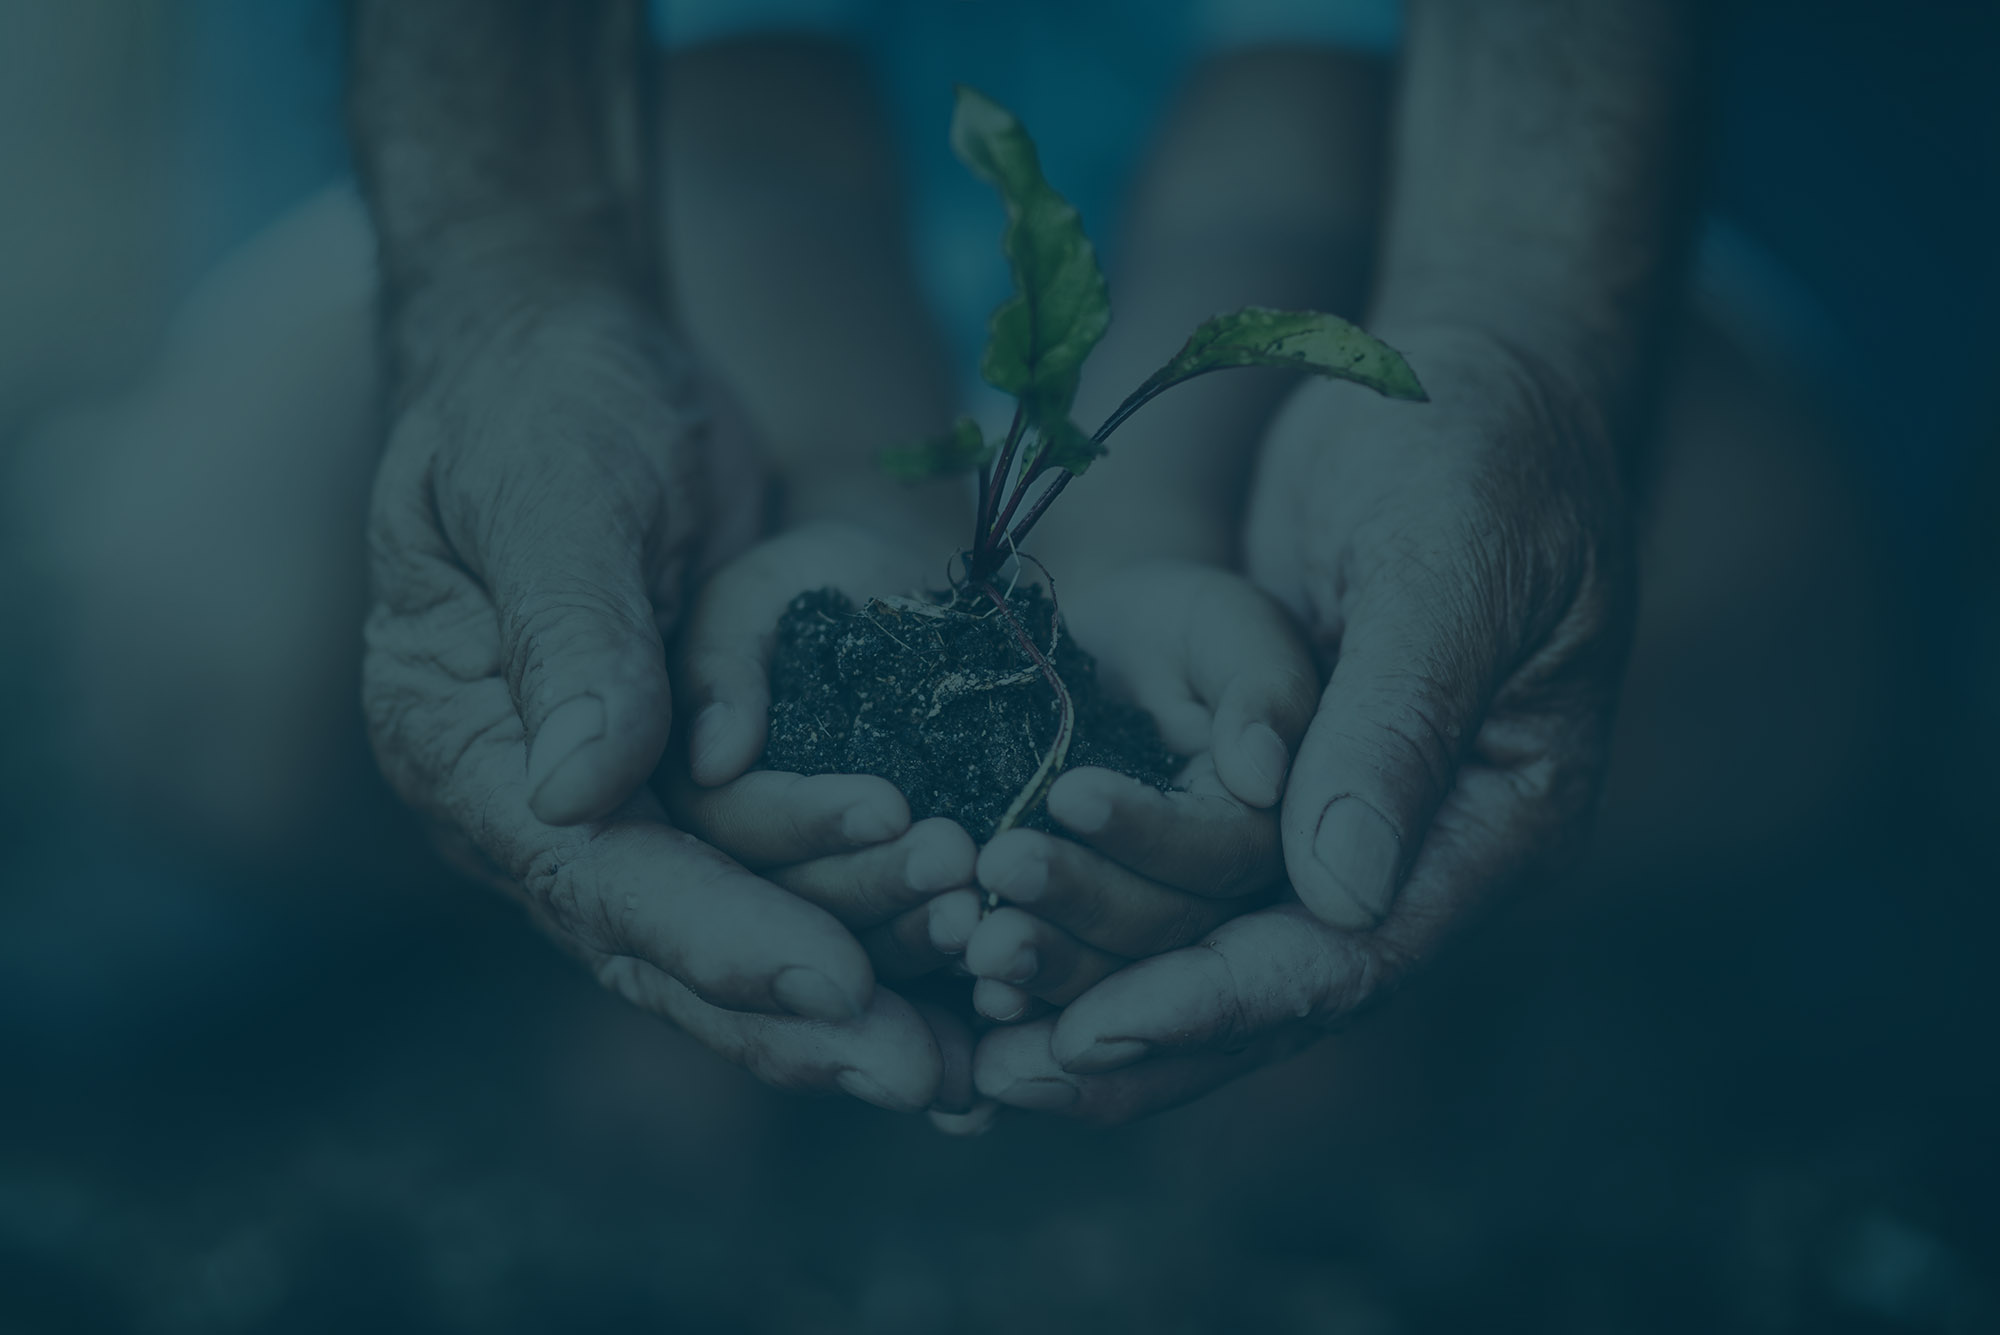 Image of a child's hand holding a seedling